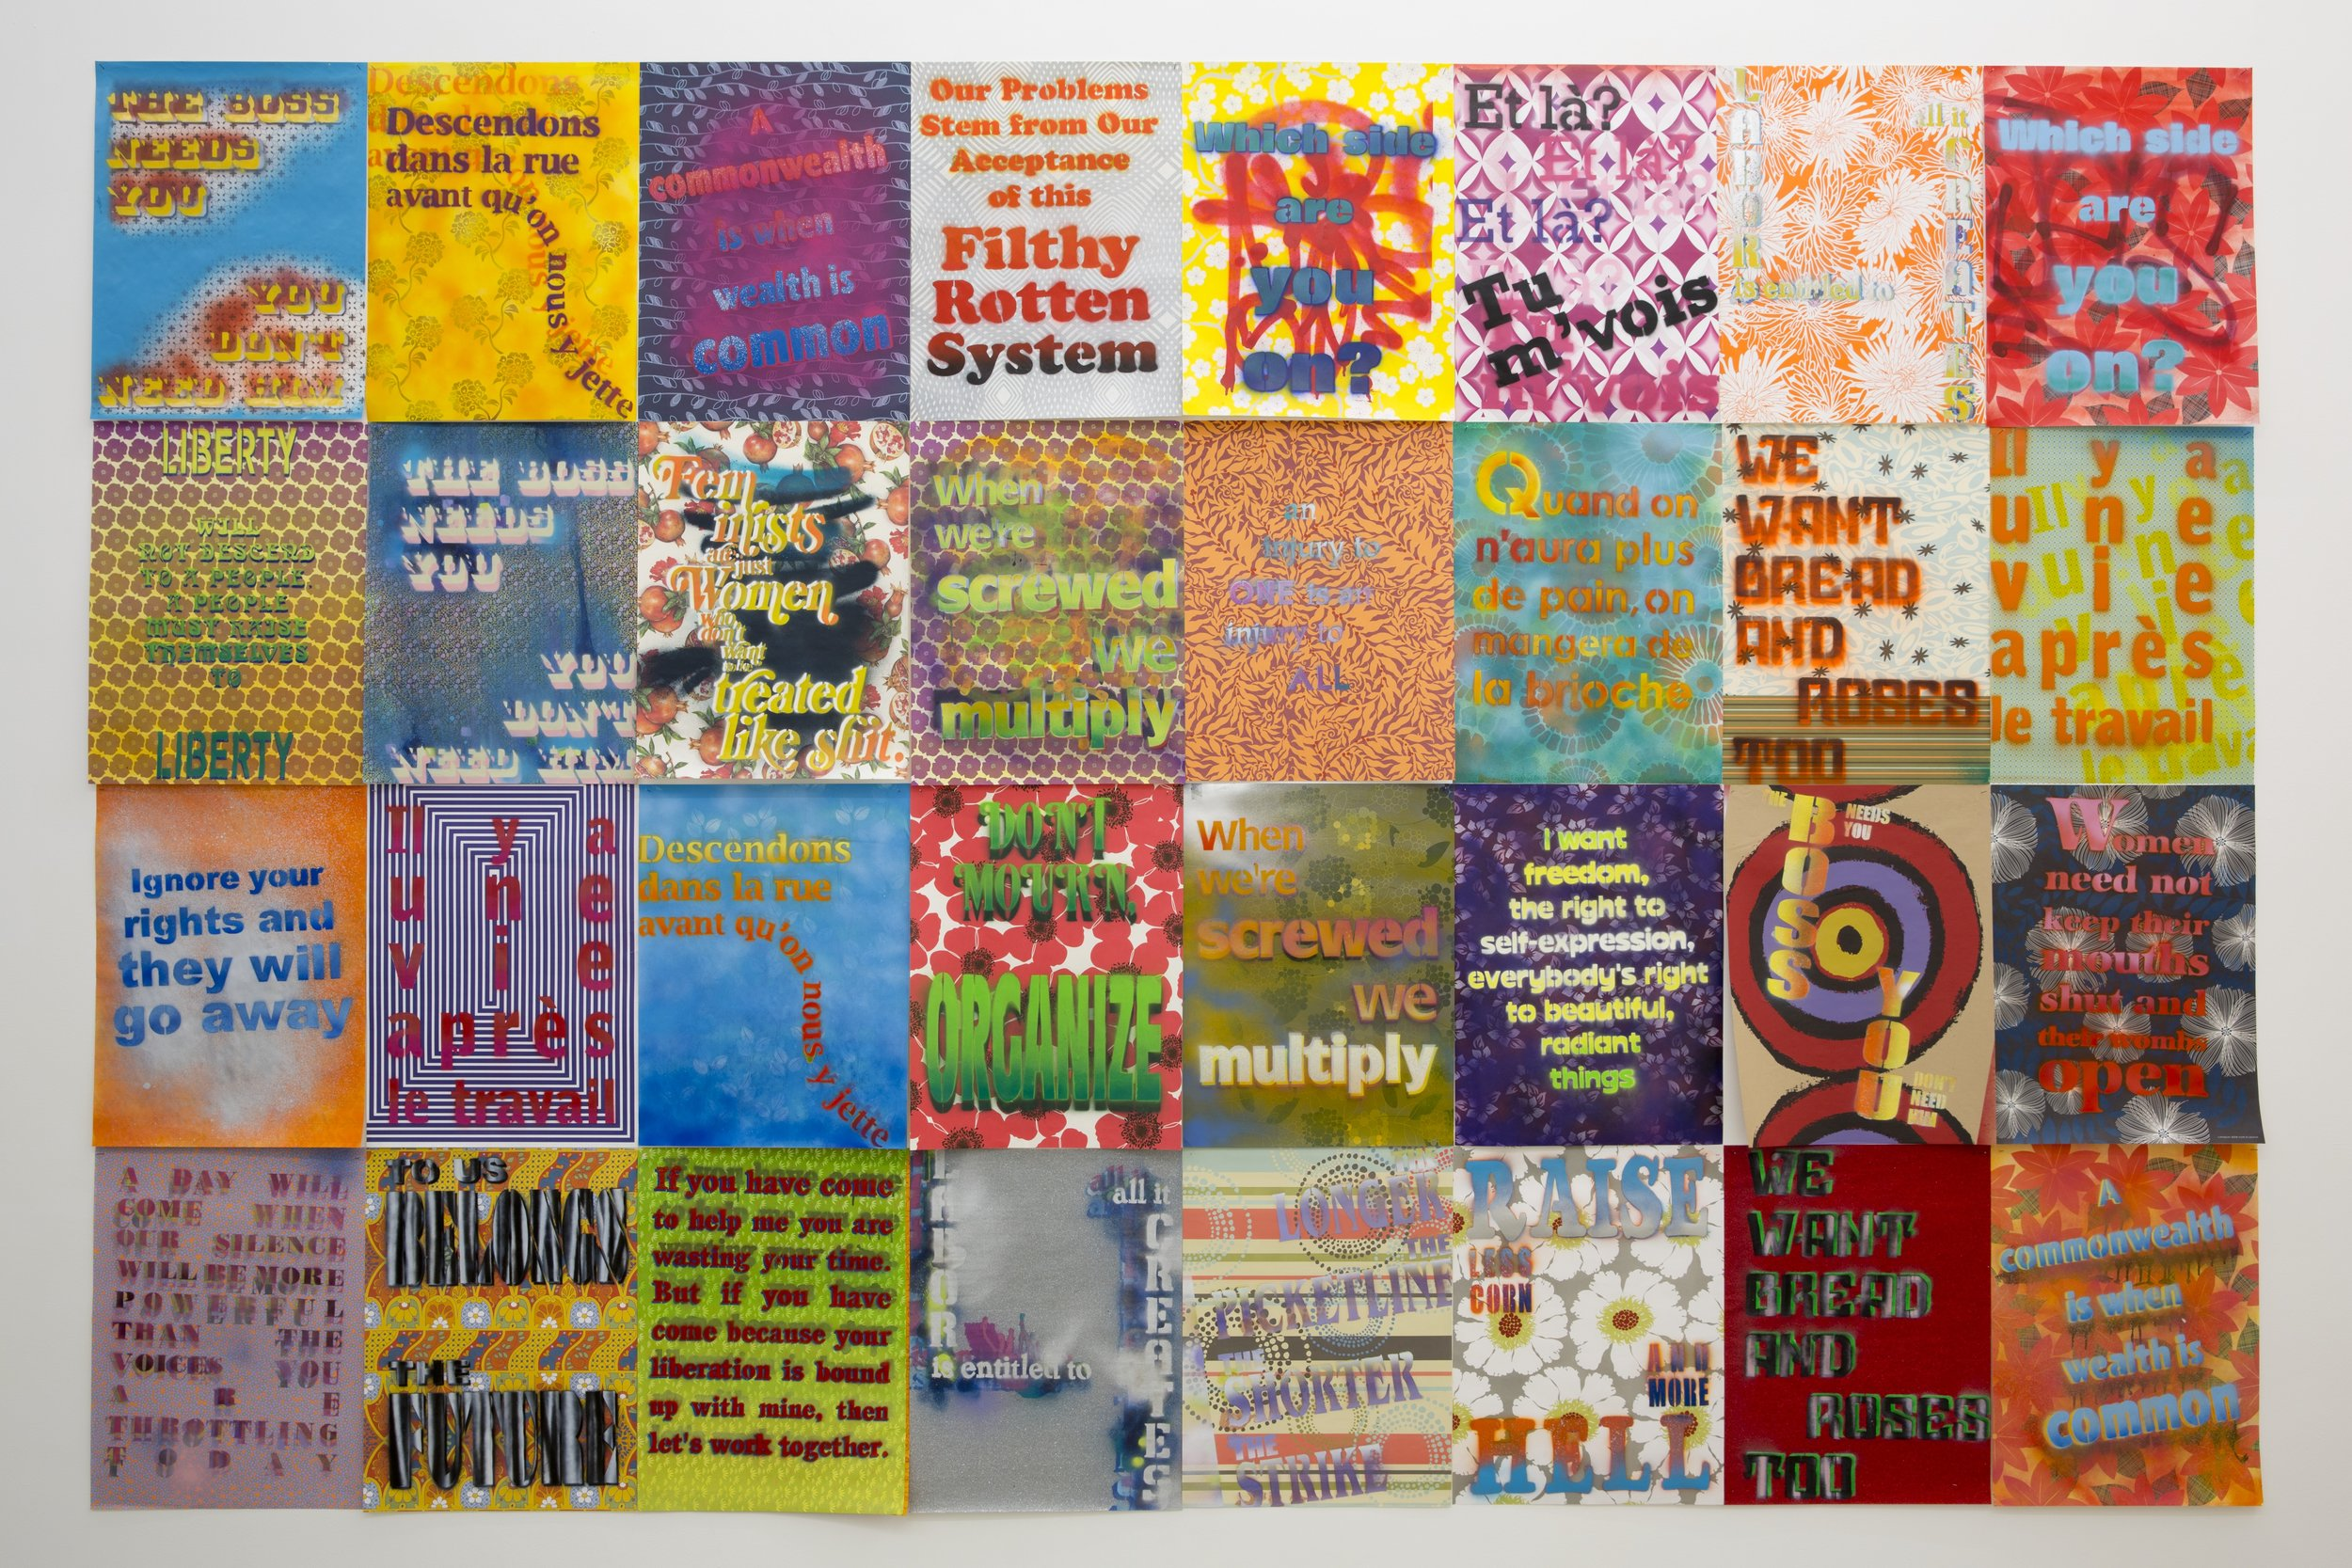 """Andrea Bowers,  Workers' Rights Posters , 2013. Image courtesy of the artist and Andrew Kreps Gallery, New York. [Image Description: A grid of 32 rectangular posters, 4 rows high and 8 columns across. The posters are rendered in a variety of bright colors and patterns, and feature repeating phrases that include """"When we're screwed we multiply,"""" """"Ignore your rights and they will go away,"""" """"Don't Mourn, Organize,"""" """"Acceptance of this filthy rotten system,"""" and """"Women need not keep their mouths shut and their wombs open.""""]"""